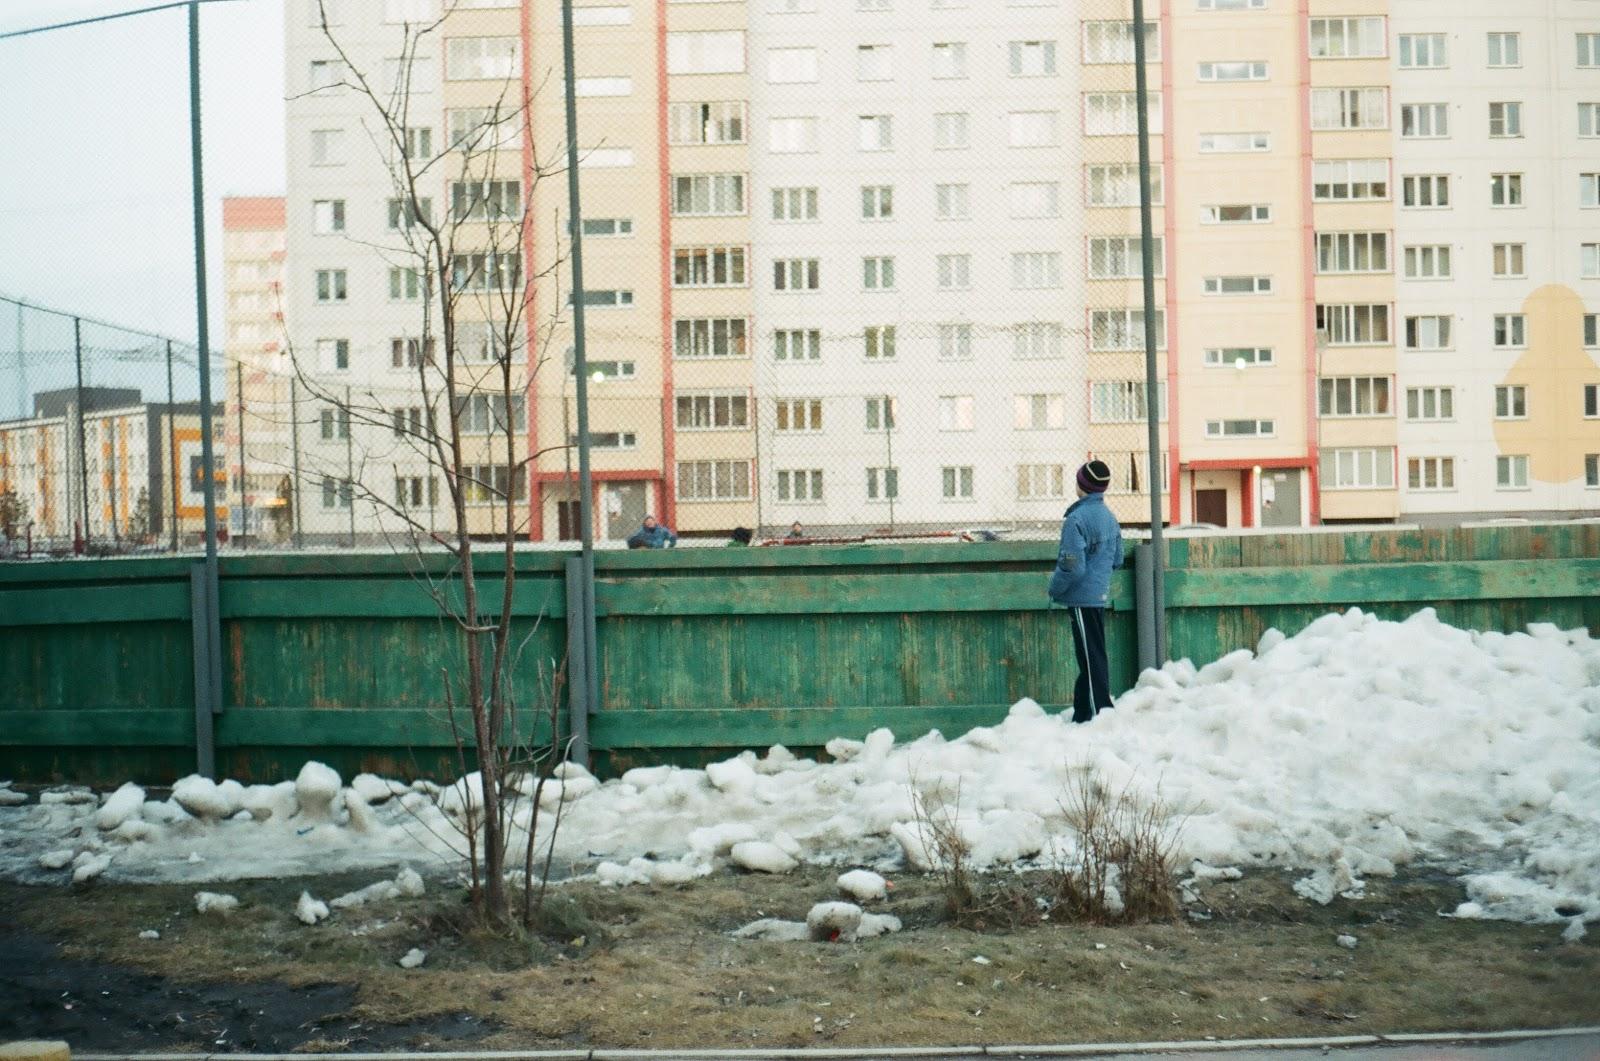 Humans of Siberia: A Photographic Exploration